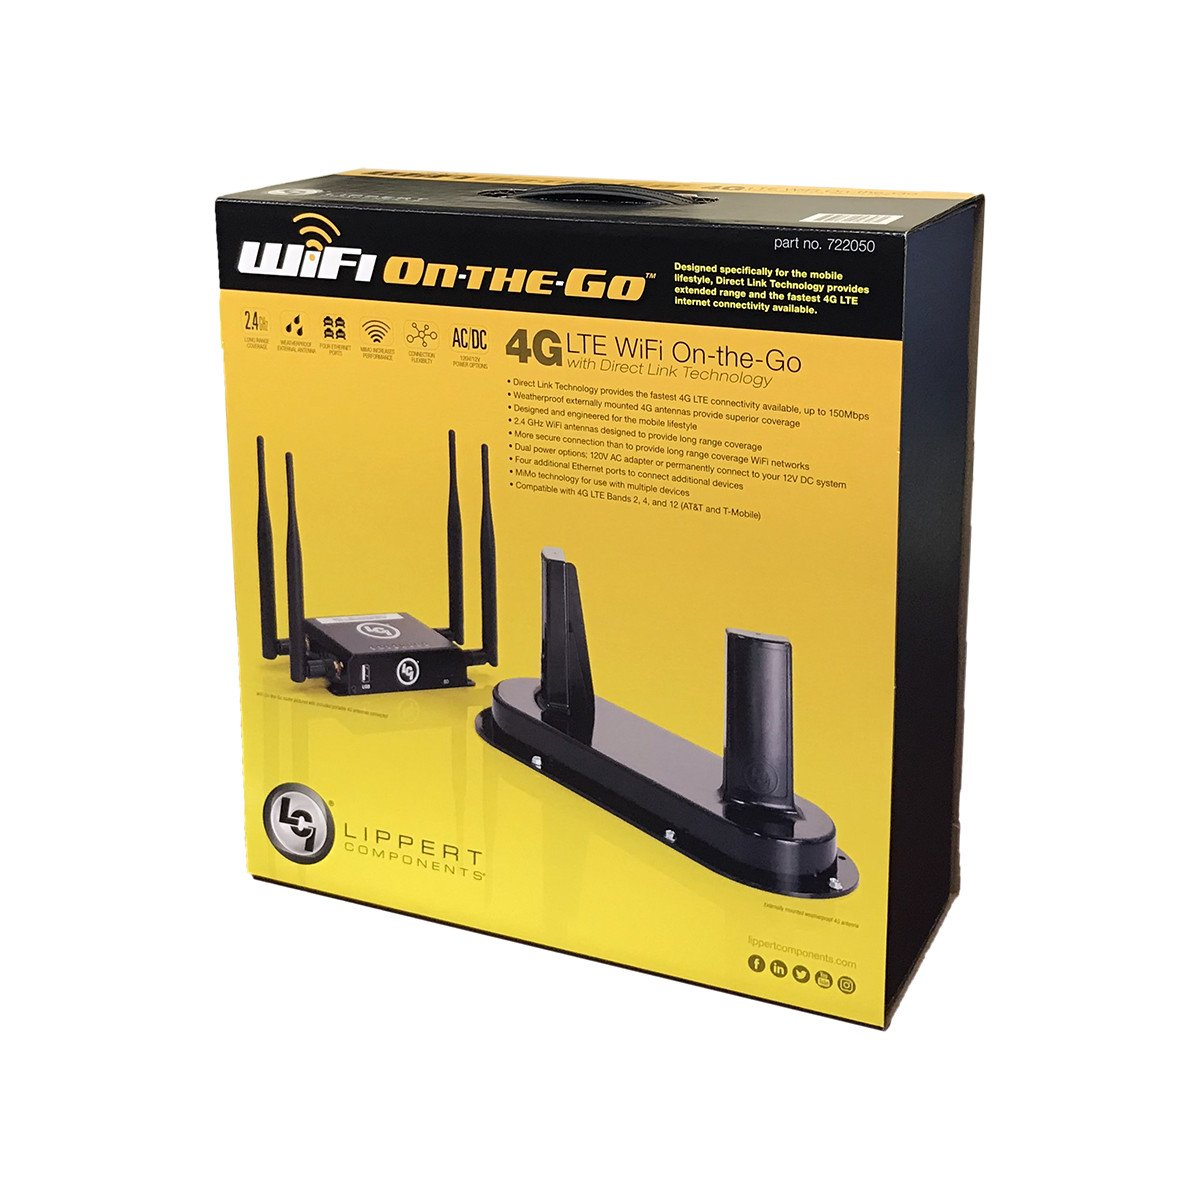 Lippert Components 722050 WiFi On-The-Go 4G LTE Mobile Broadband Network Kit with Direct Link Technology